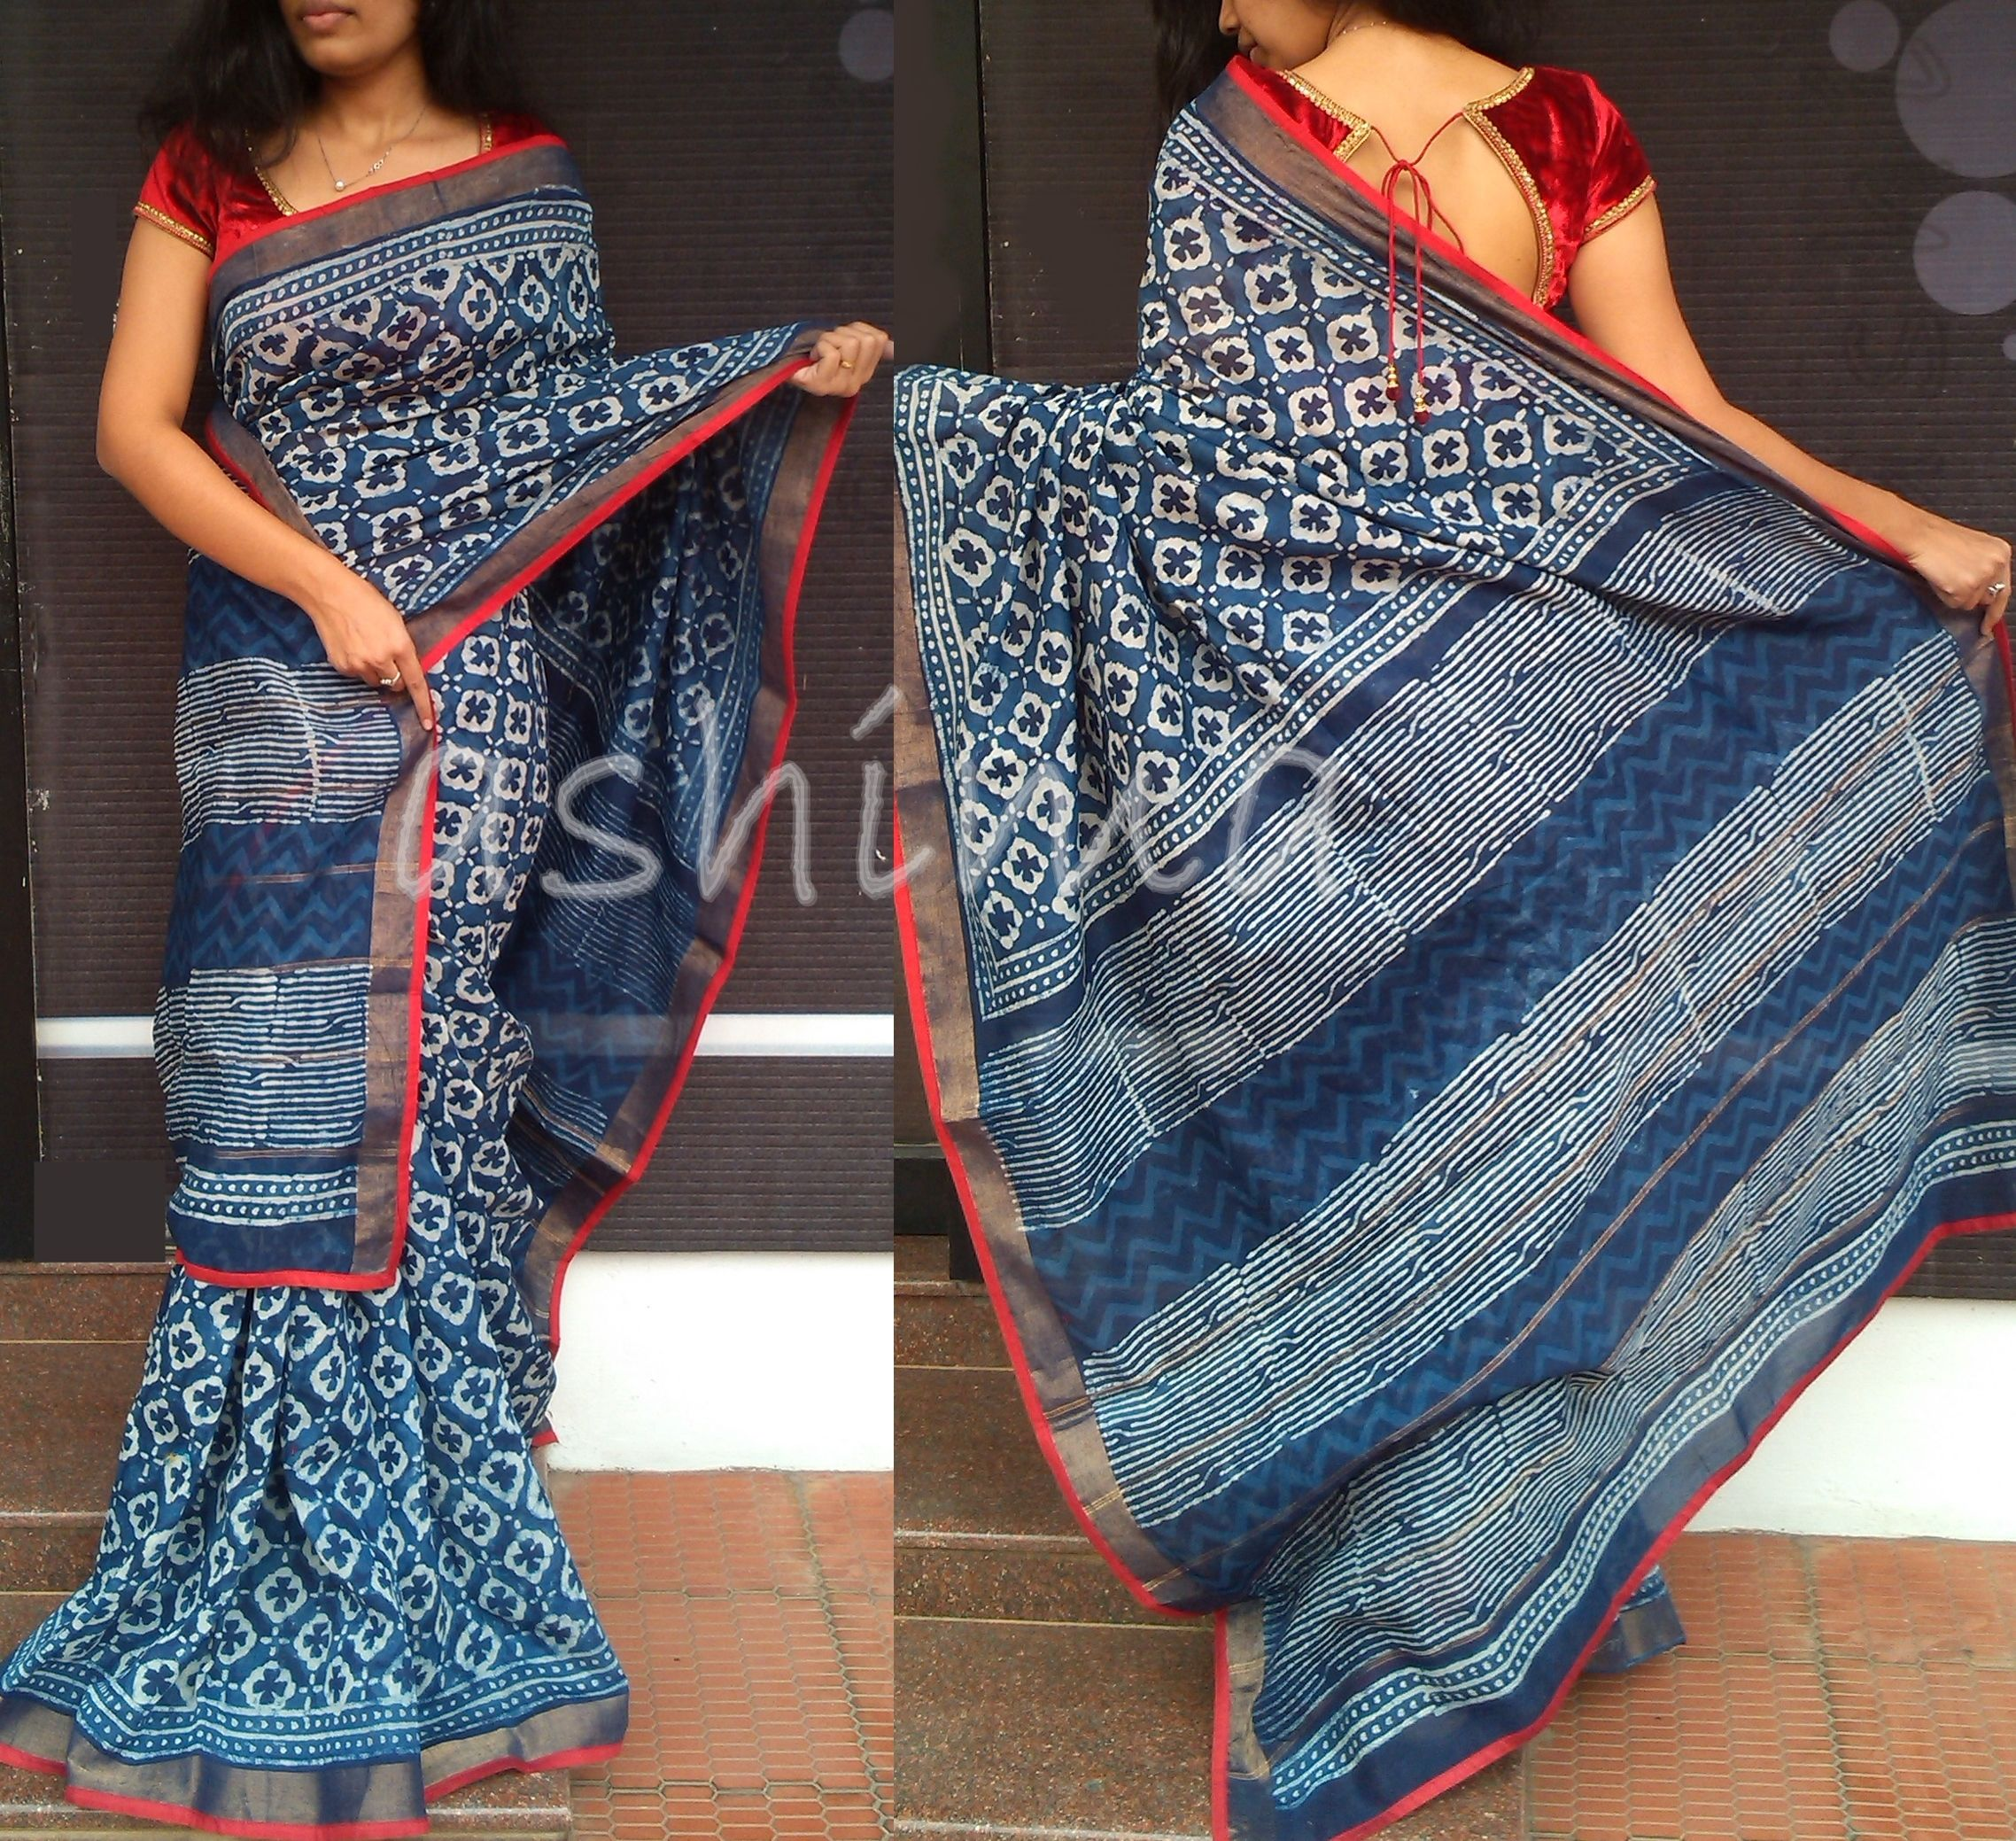 642069d1c0 Code-1811154-Block Printed Chanderi Silk- Price INR:2990/- Saree reserved  by a customer